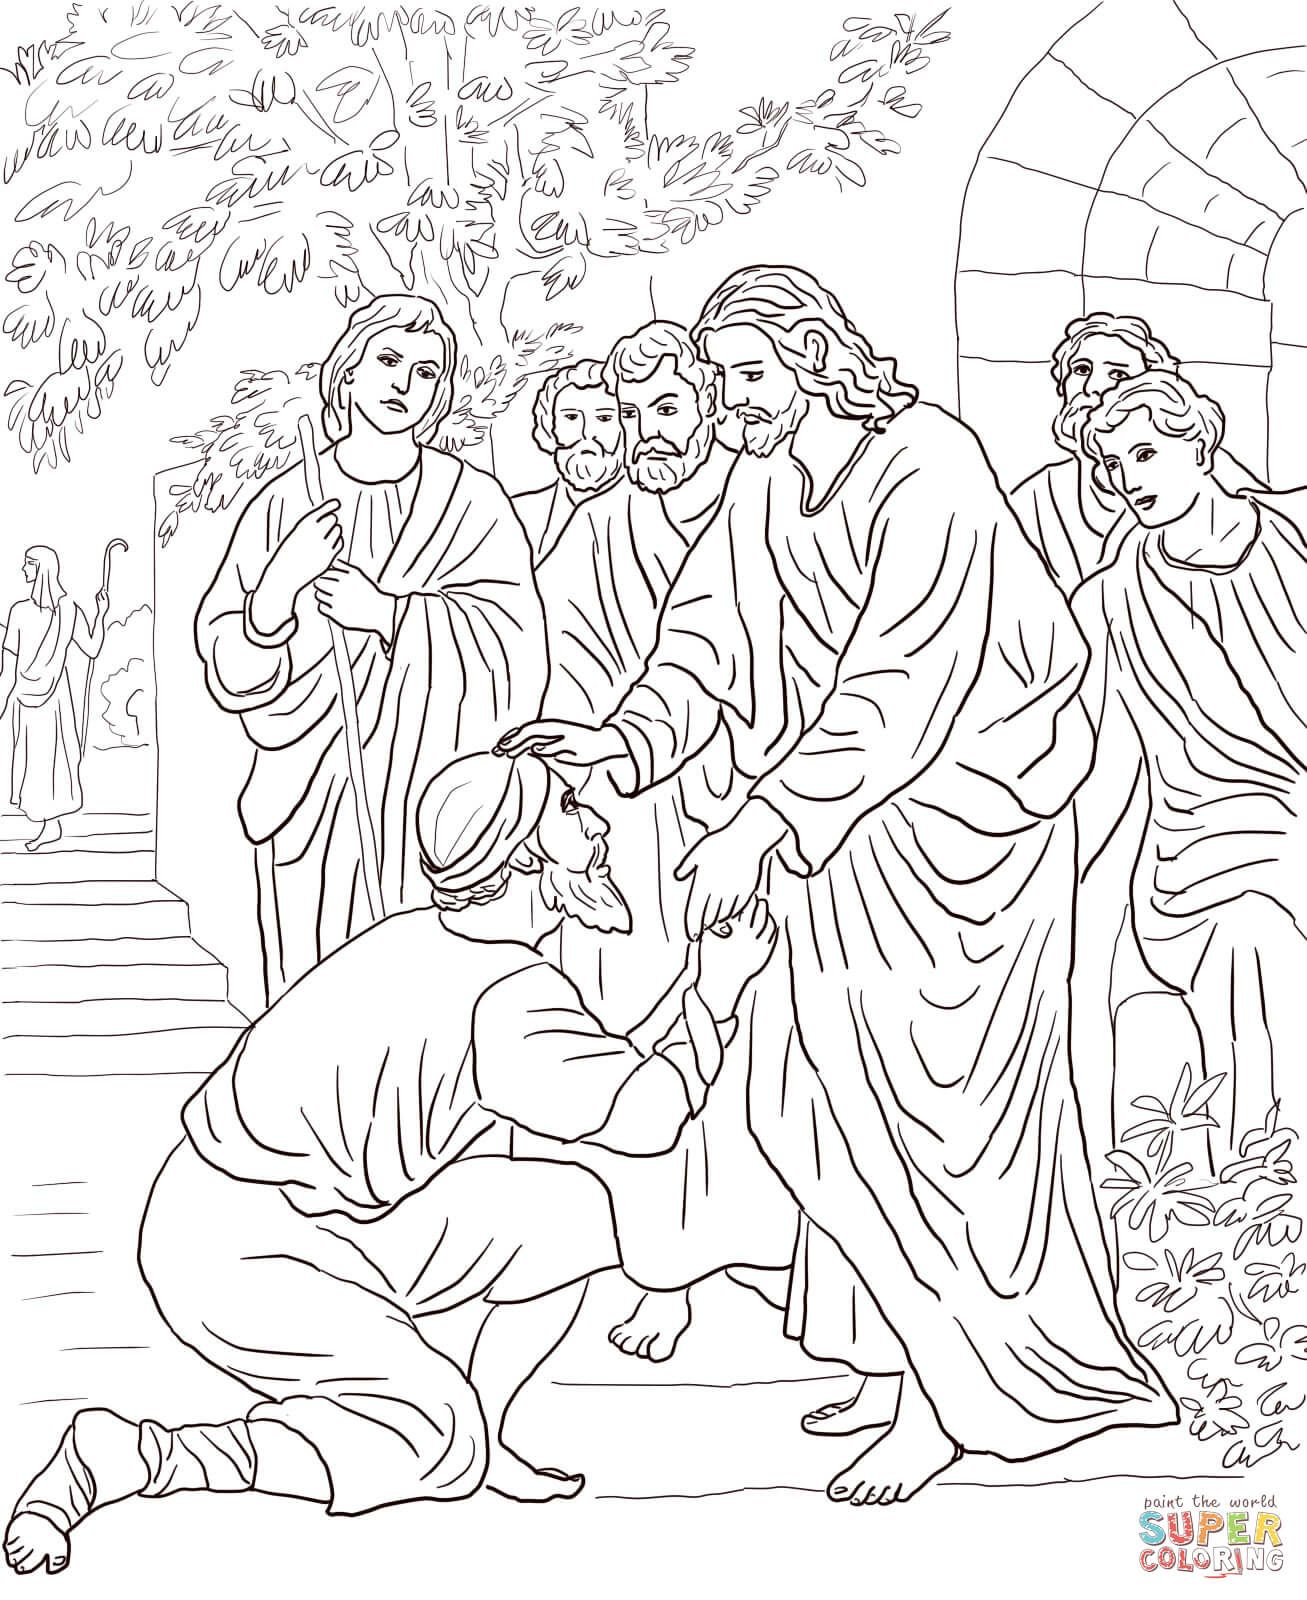 Coloring pages for john 9 - Ebde4b37b4cc20d885ddd17cd243e3ef Jpg